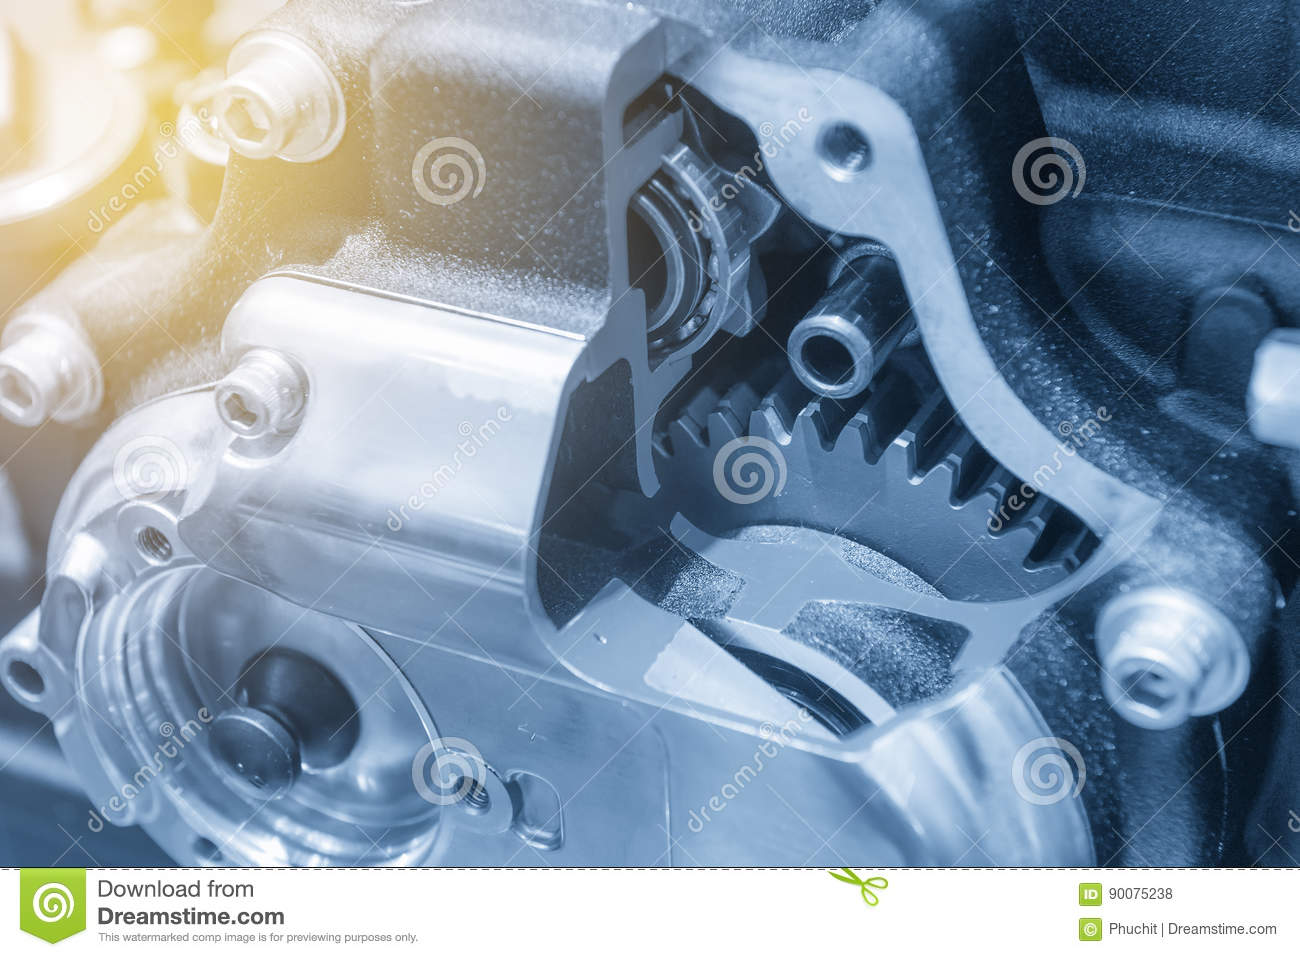 The Motorcycle Gear Box Stock Photo Image Of Design 90075238